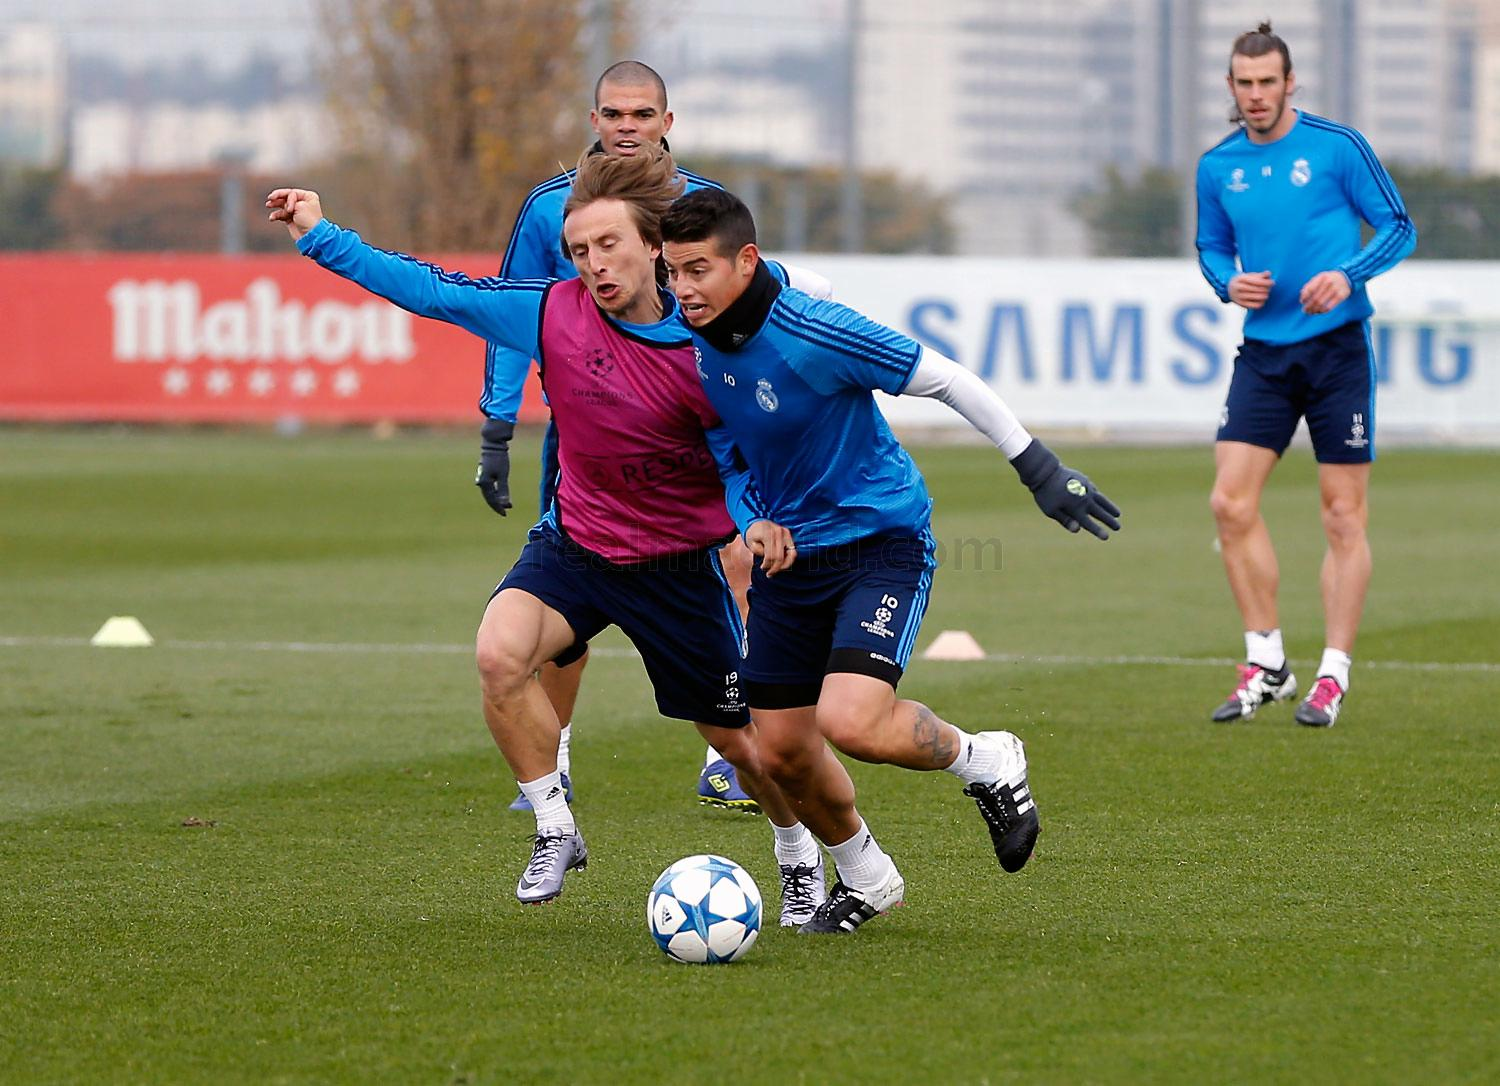 Real Madrid - Entrenamiento del Real Madrid - 07-12-2015